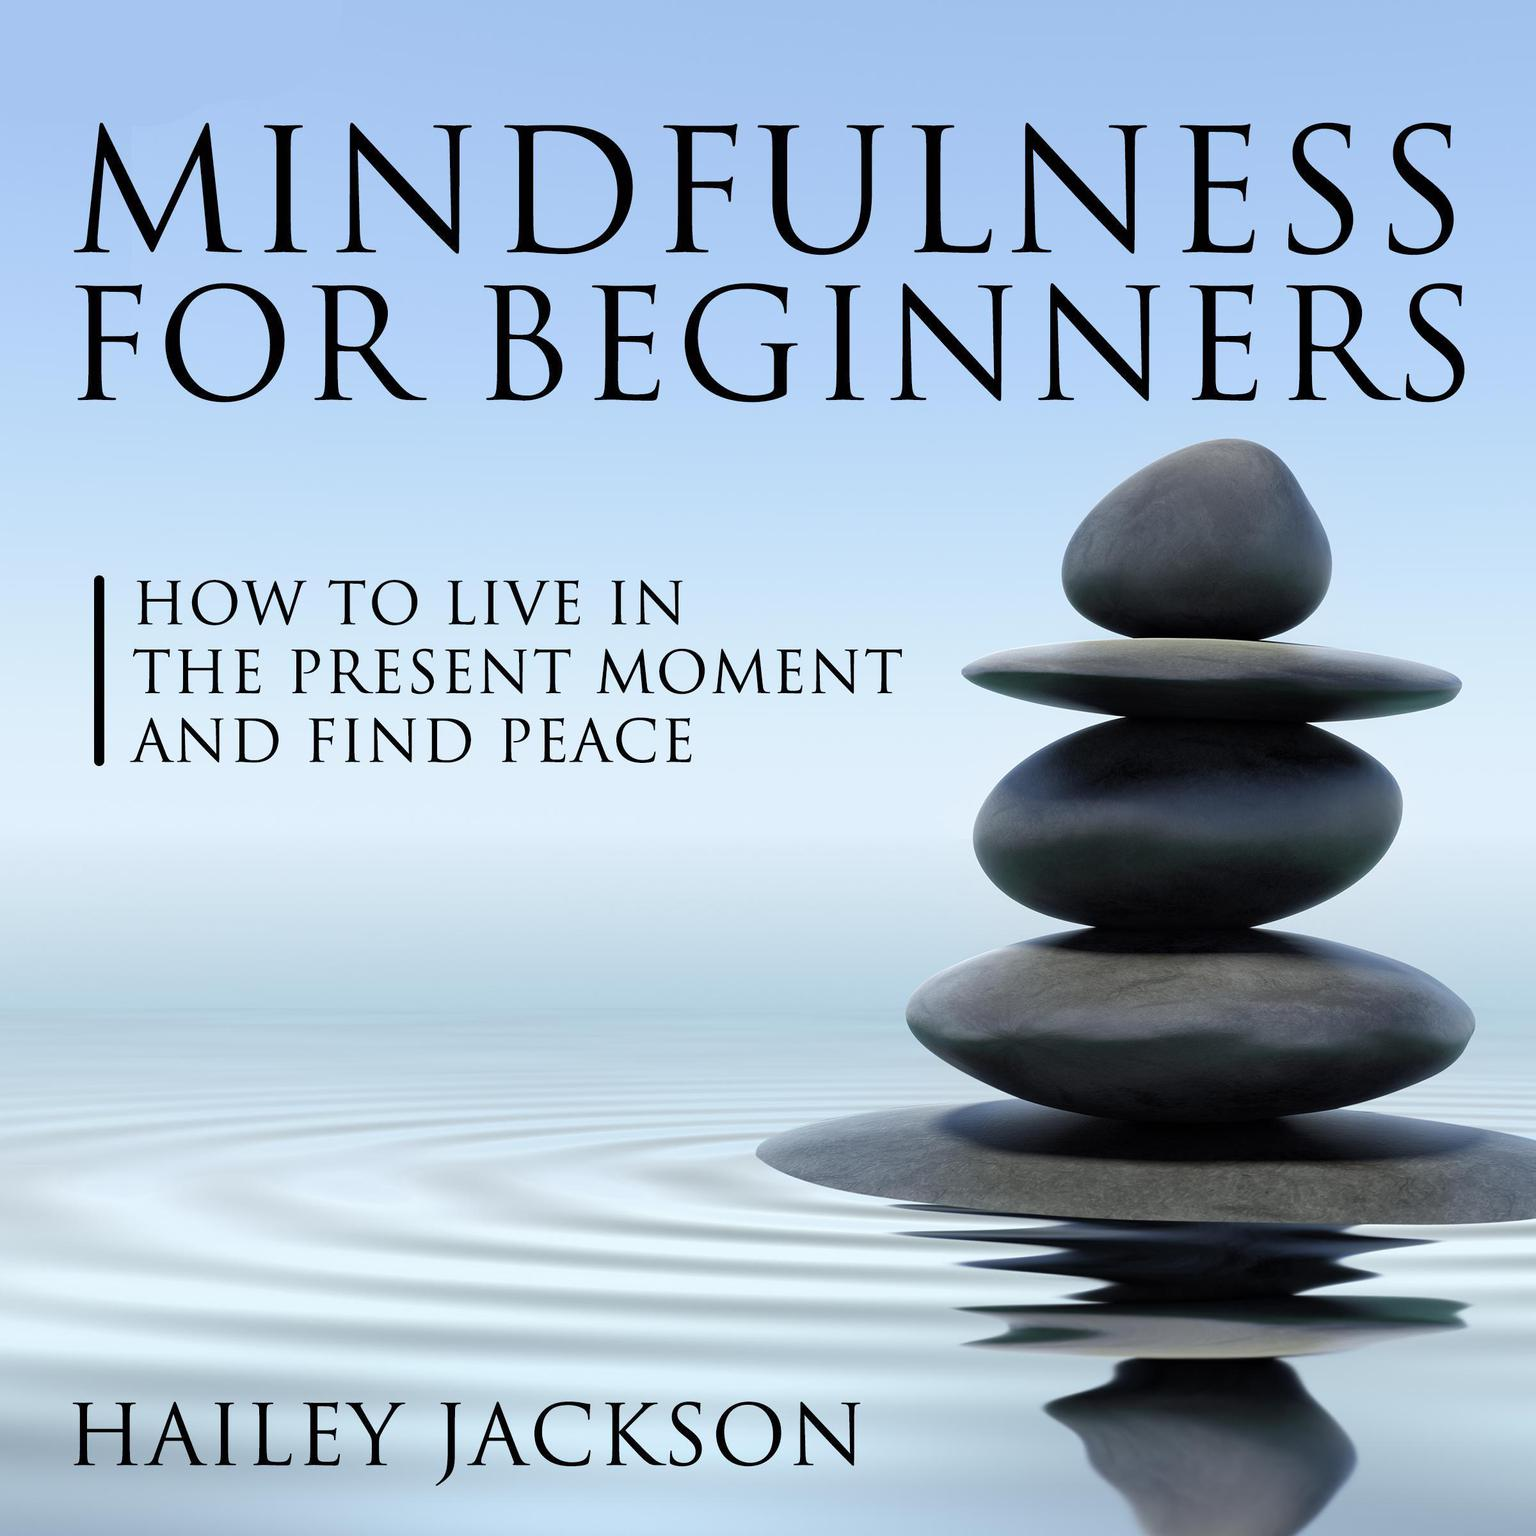 Mindfulness for Beginners: How to Live in the Present Moment and Find Peace Audiobook, by Hailey Jackson